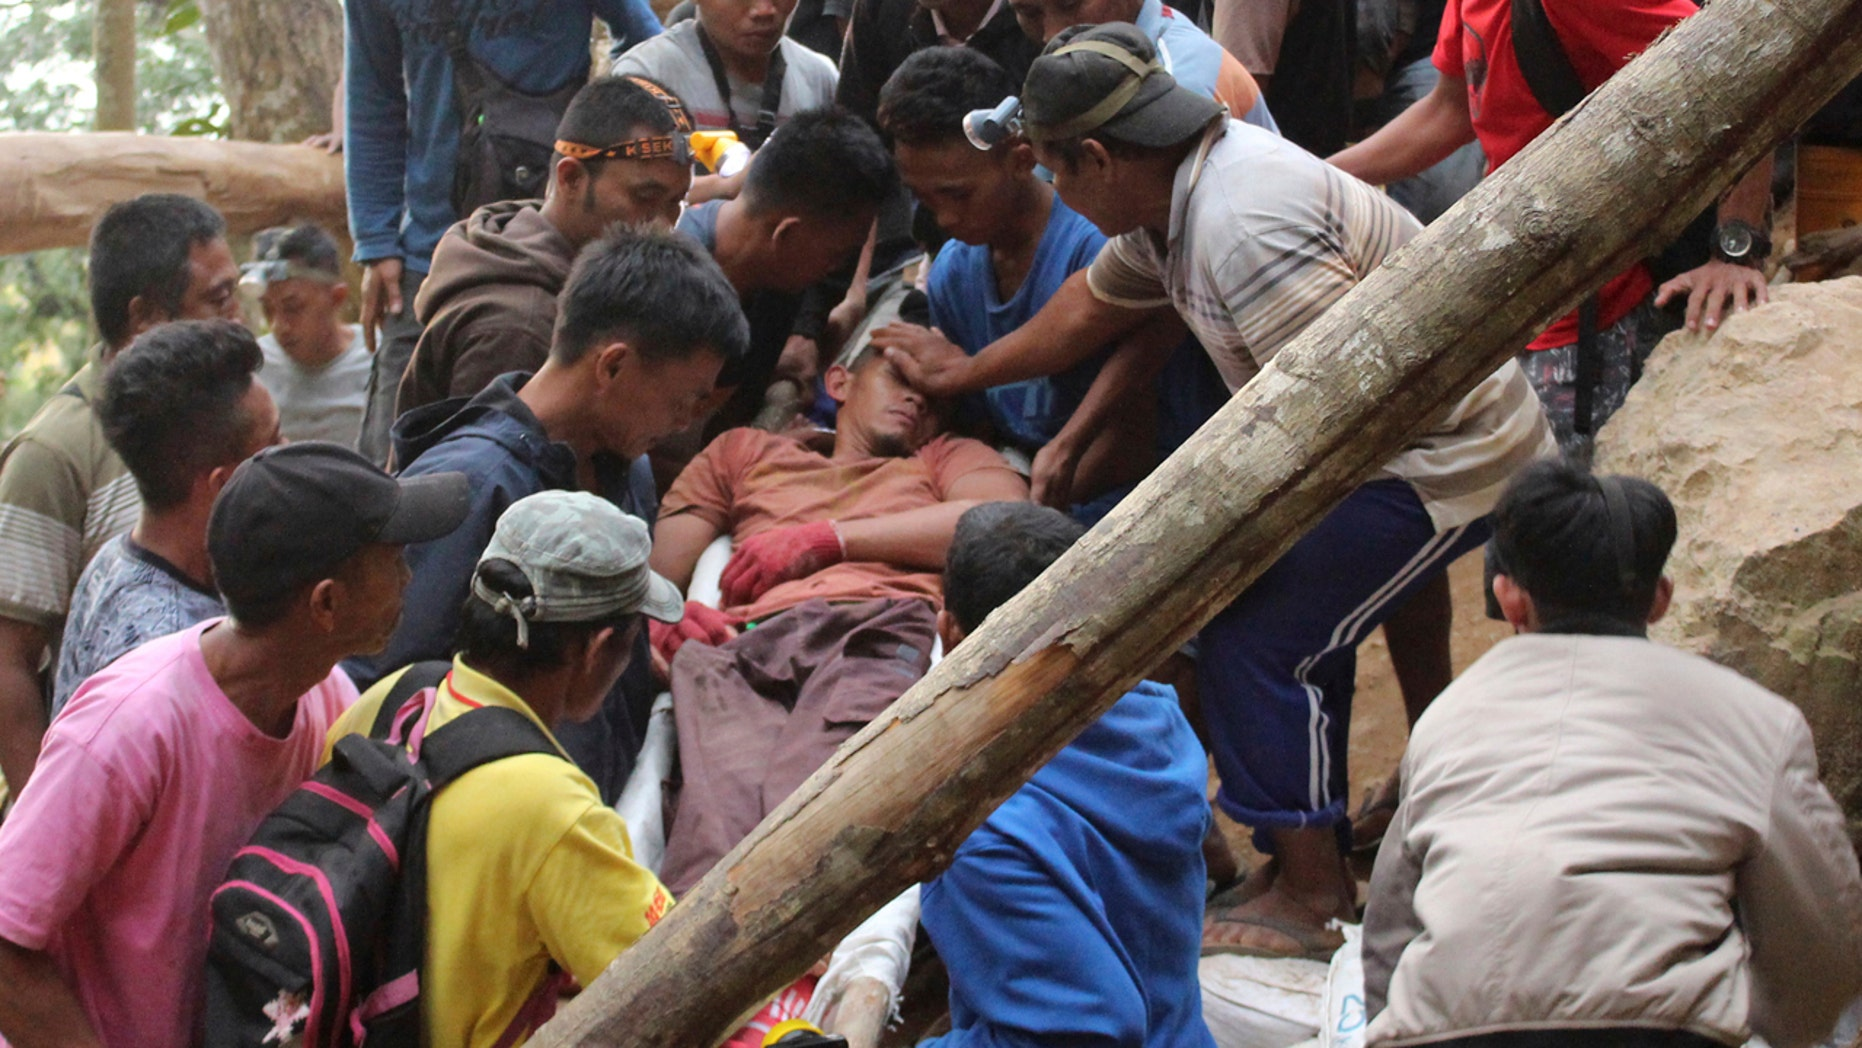 Rescuers carry a survivor from inside a collapsed mine in Bolaang Mongondow, North Sulawesi, Indonesia, Wednesday, Feb. 27, 2019.